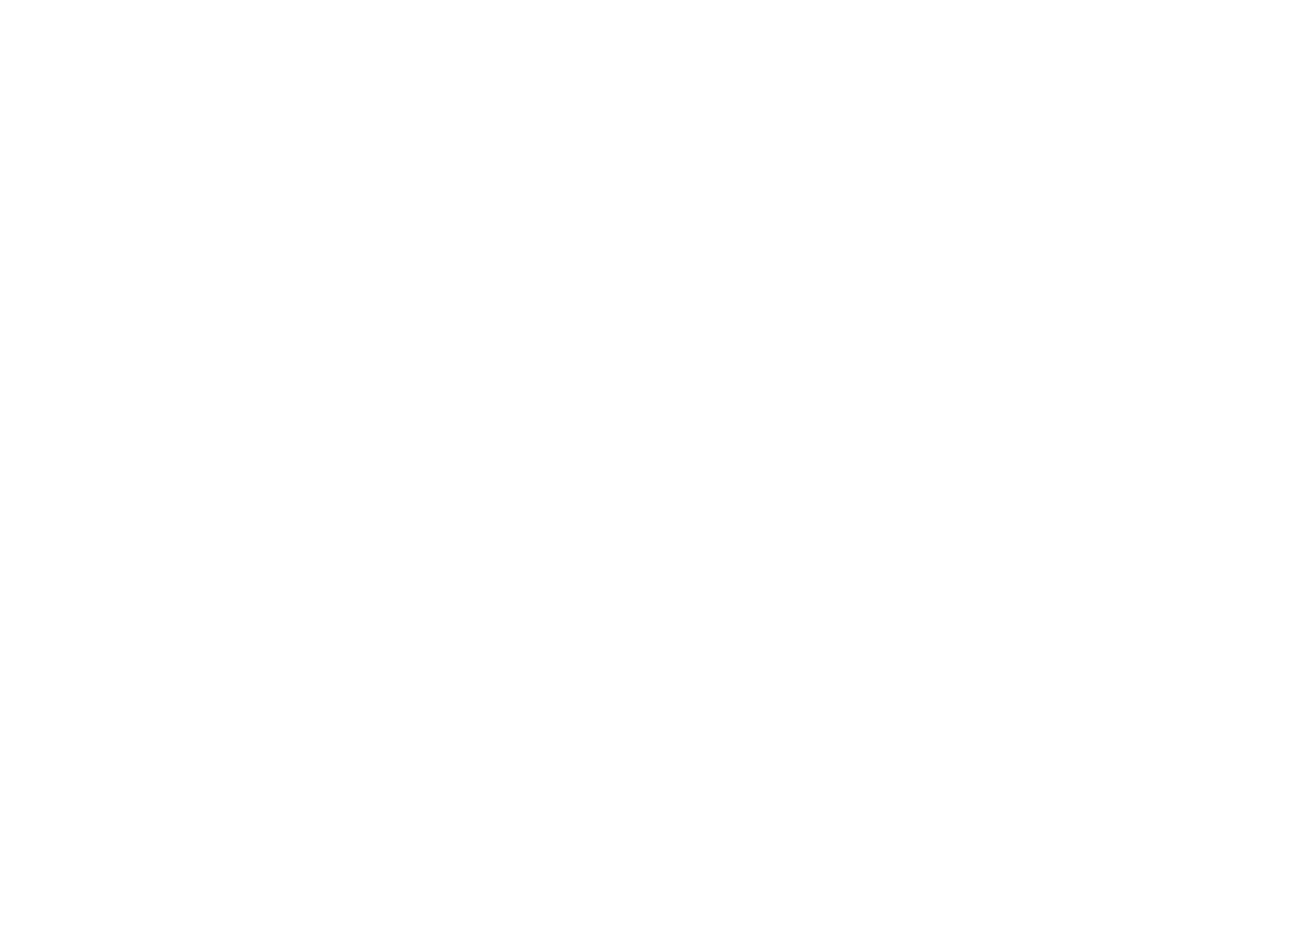 All Obituaries | Beach Funeral & Cremation Services, Inc